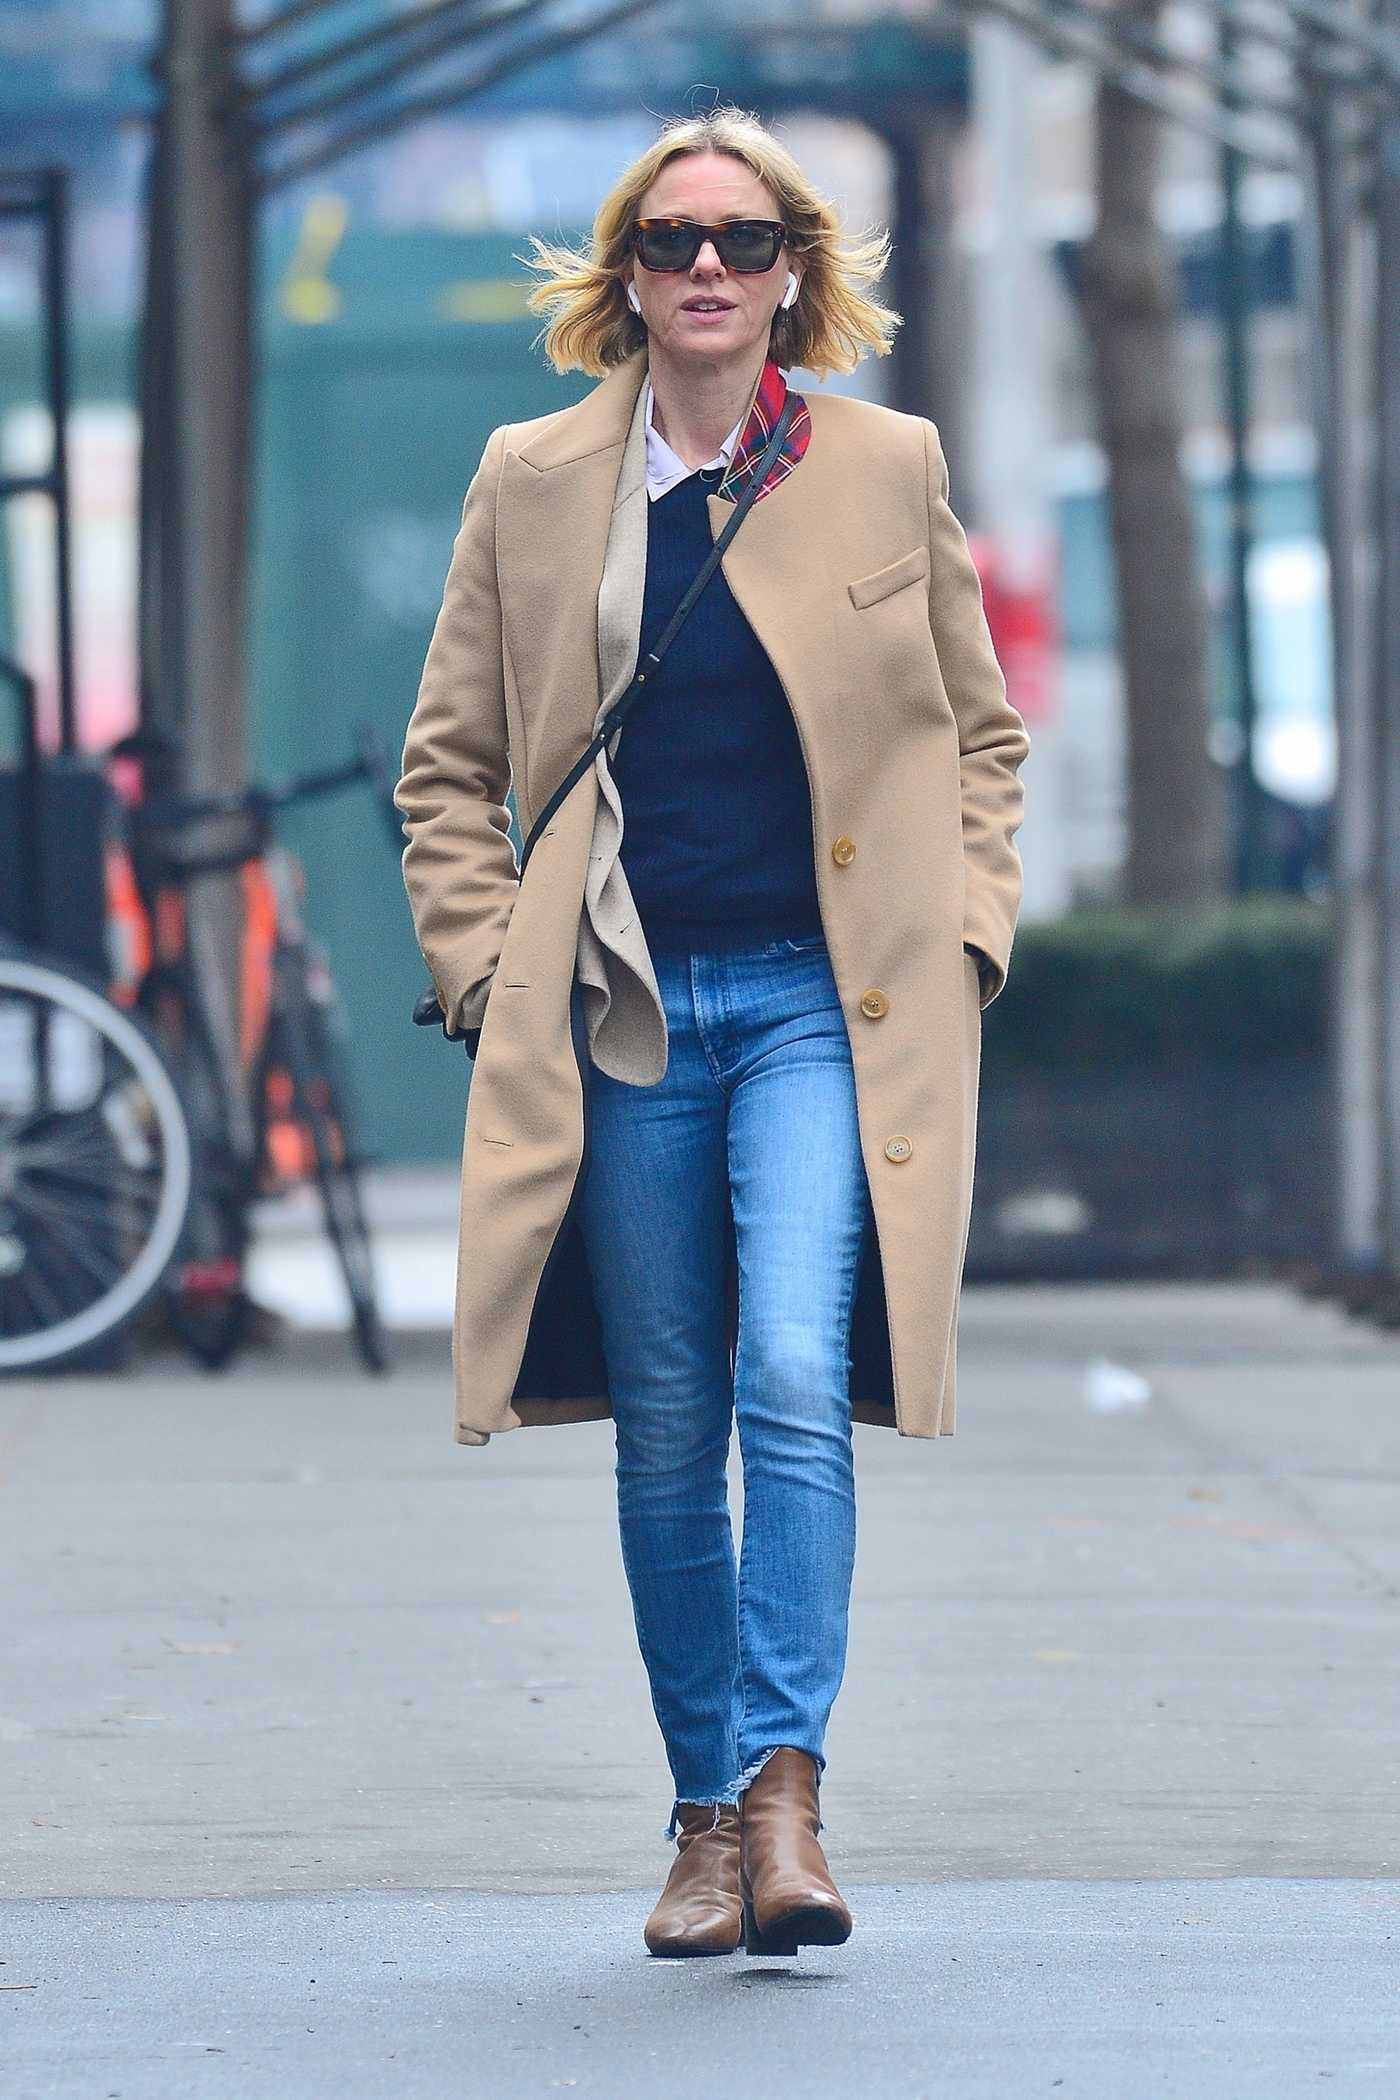 Naomi Watts in a Beige Coat Was Seen Out in NYC 02/05/2019